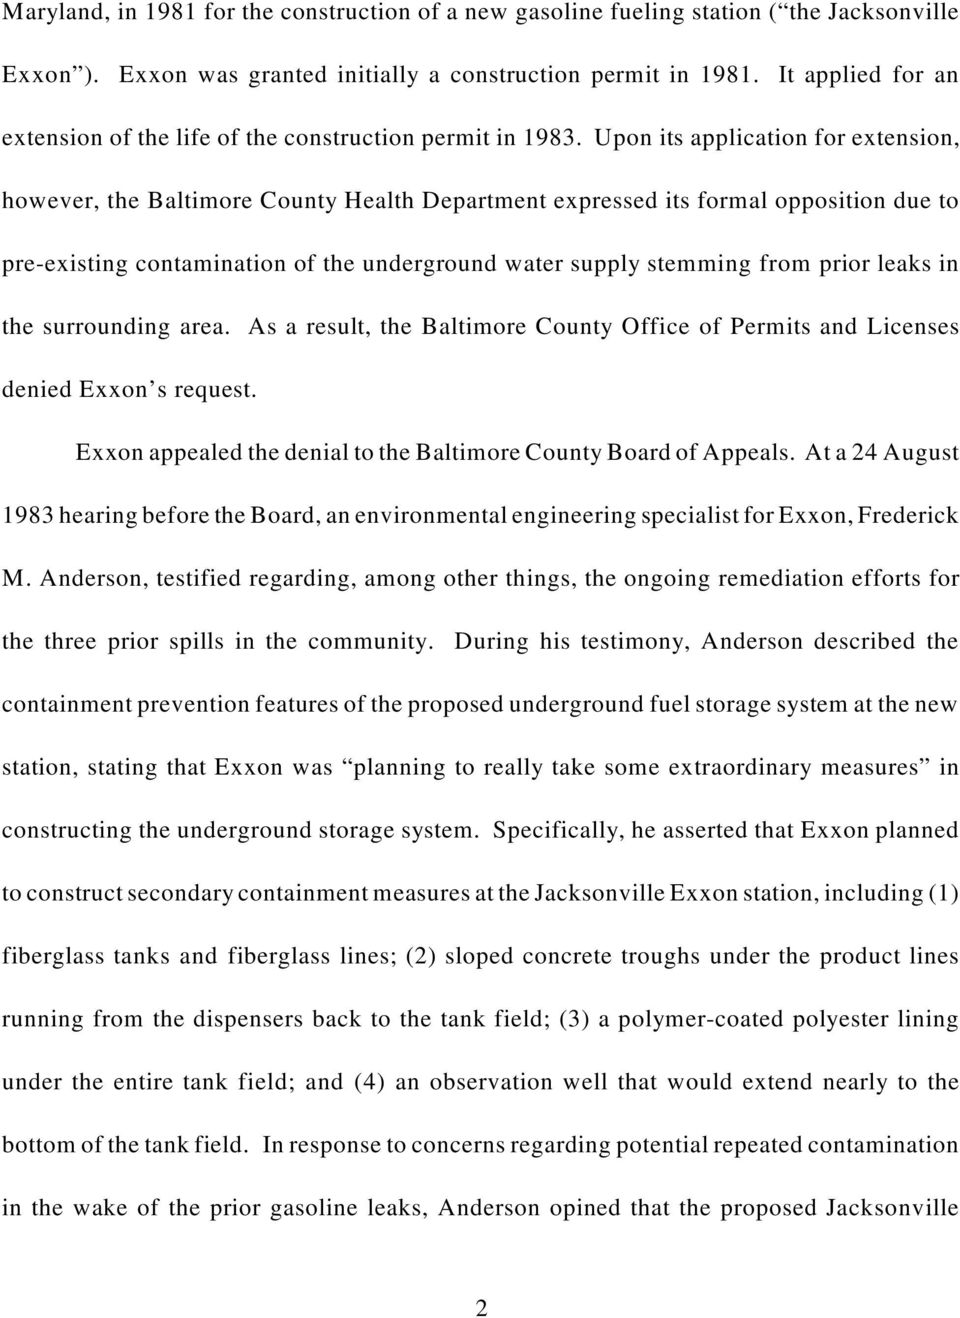 Upon its application for extension, however, the Baltimore County Health Department expressed its formal opposition due to pre-existing contamination of the underground water supply stemming from